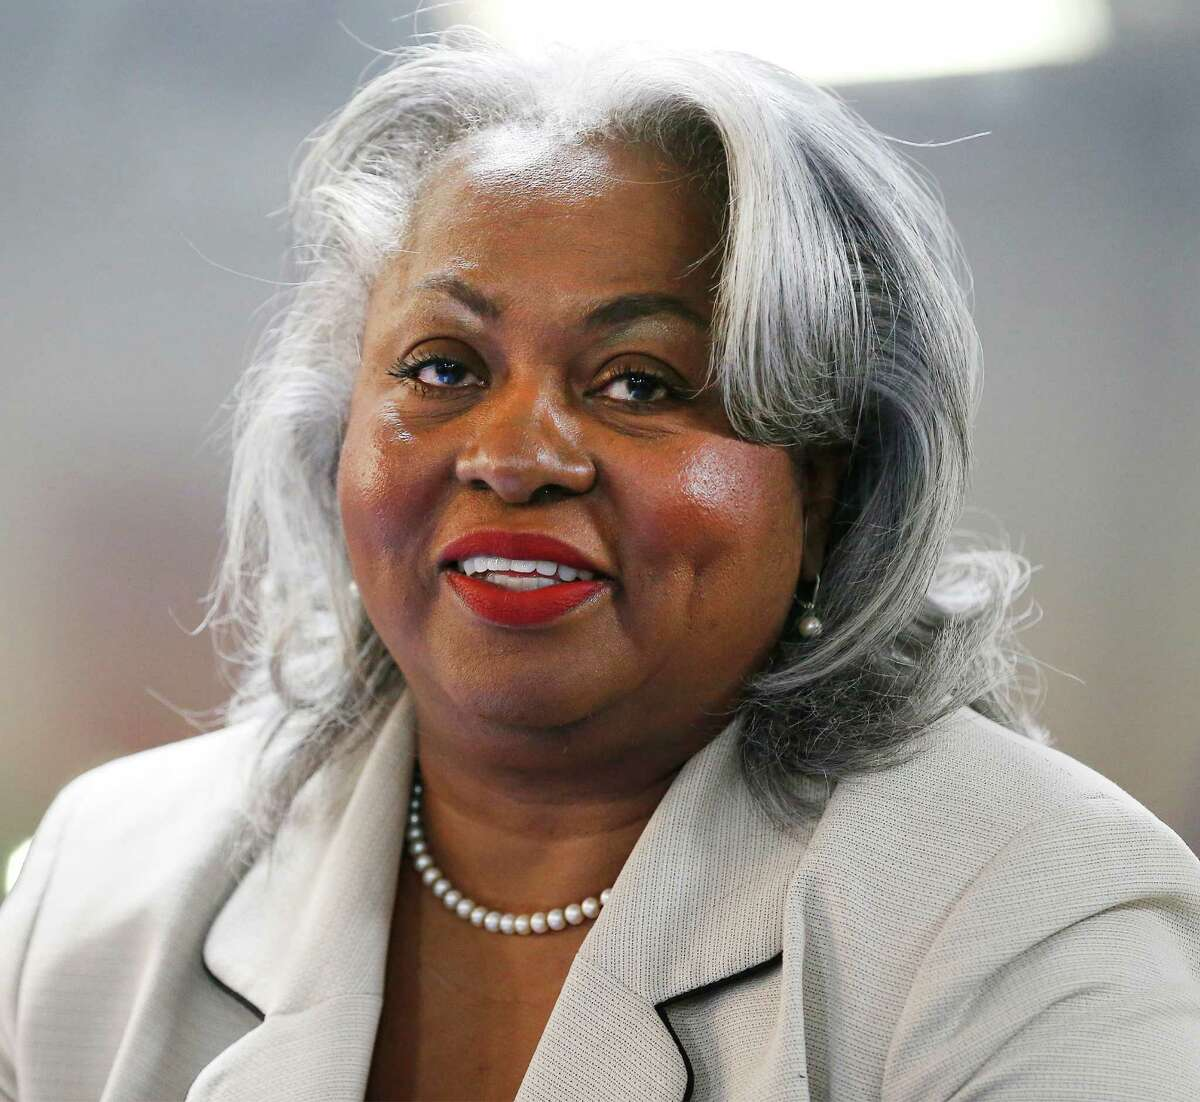 Candidate Barbara Gervin-Hawkins is vying for Ruth Jones McClendon's Texas House District 120 seat against five other candidates. The group gathered for a town hall meeting at Second Baptist Church on Wednesday, Feb. 3, 2016. The other candidates are: Mario Salas, Byron Miller, Lou Miller, Art Hall and LaTronda Darnell. Voters will decide on March 1 who will replace McClendon, who served for 19 years in the Texas House, as she announced her decision not to run for re-election after battling health issues including lung cancer. (Kin Man Hui/San Antonio Express-News)